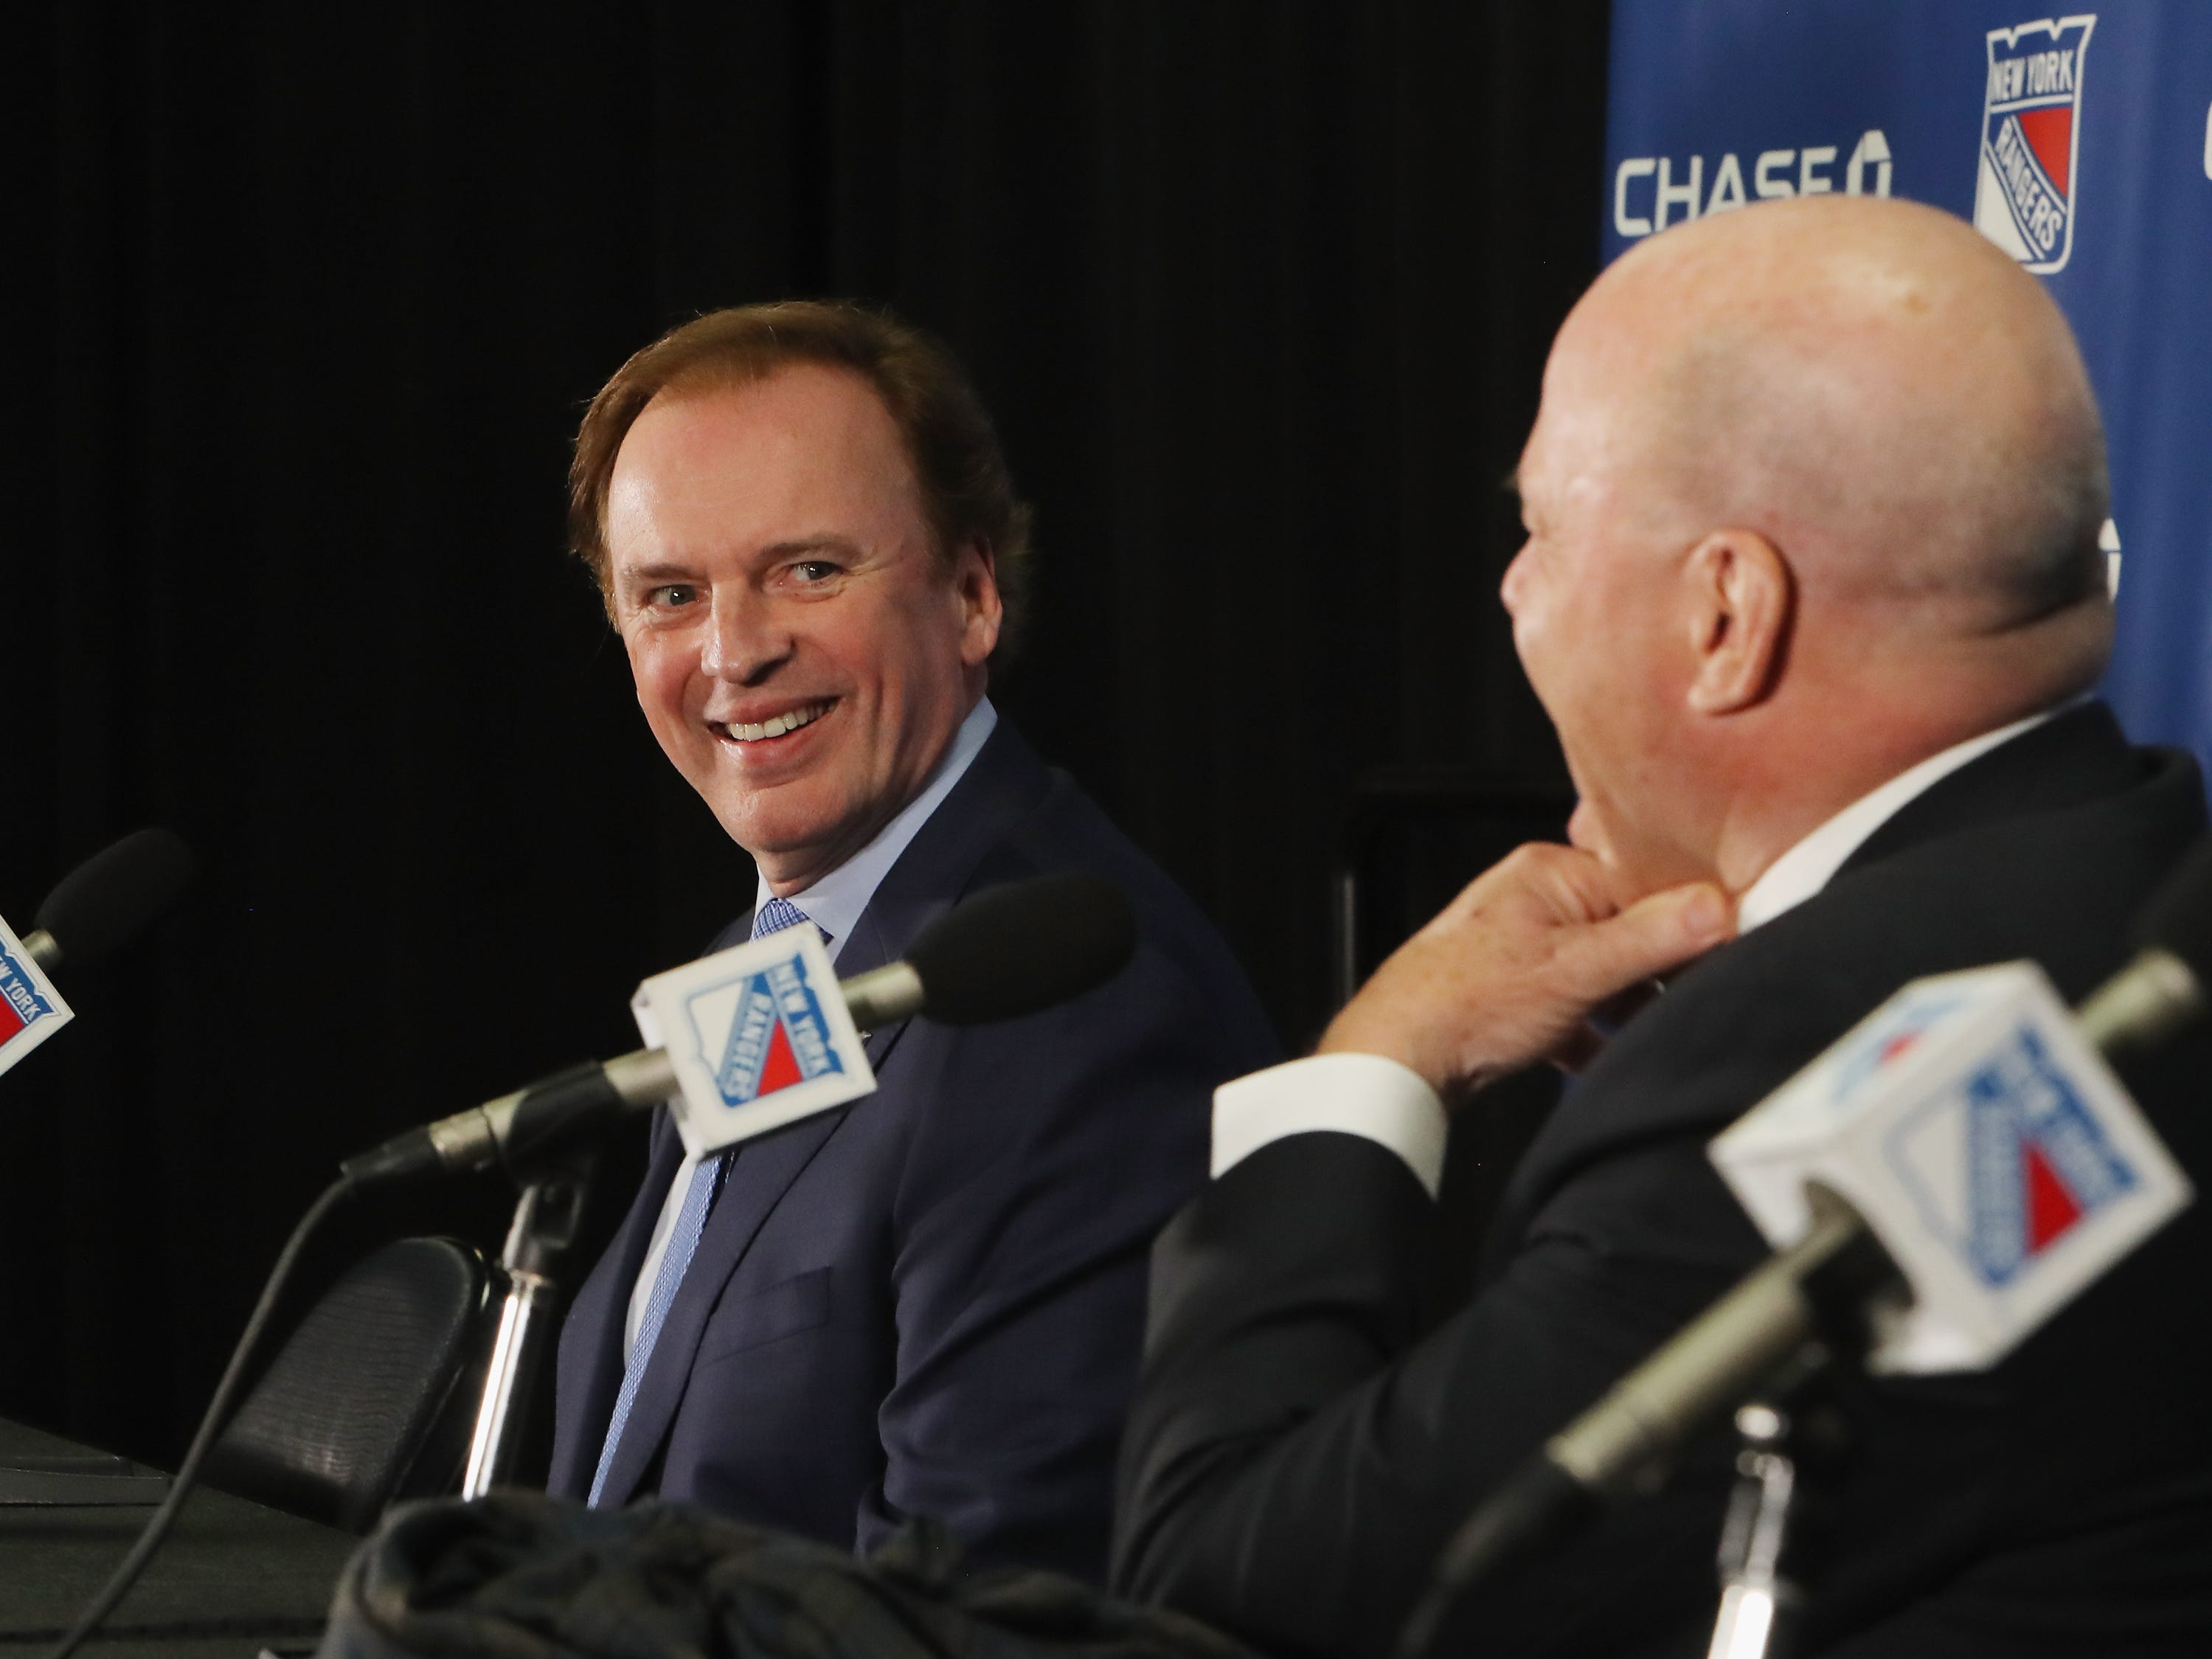 NEW YORK, NEW YORK - FEBRUARY 08: (l-r) Former New York Ranger GM Neil Smith and coach Mike Keenan meet with the media prior to the Rangers game against the Carolina Hurricanes at Madison Square Garden on February 08, 2019 in New York City. The Rangers were celebrating the 25th anniversary of their Stanley Cup win in 1994.